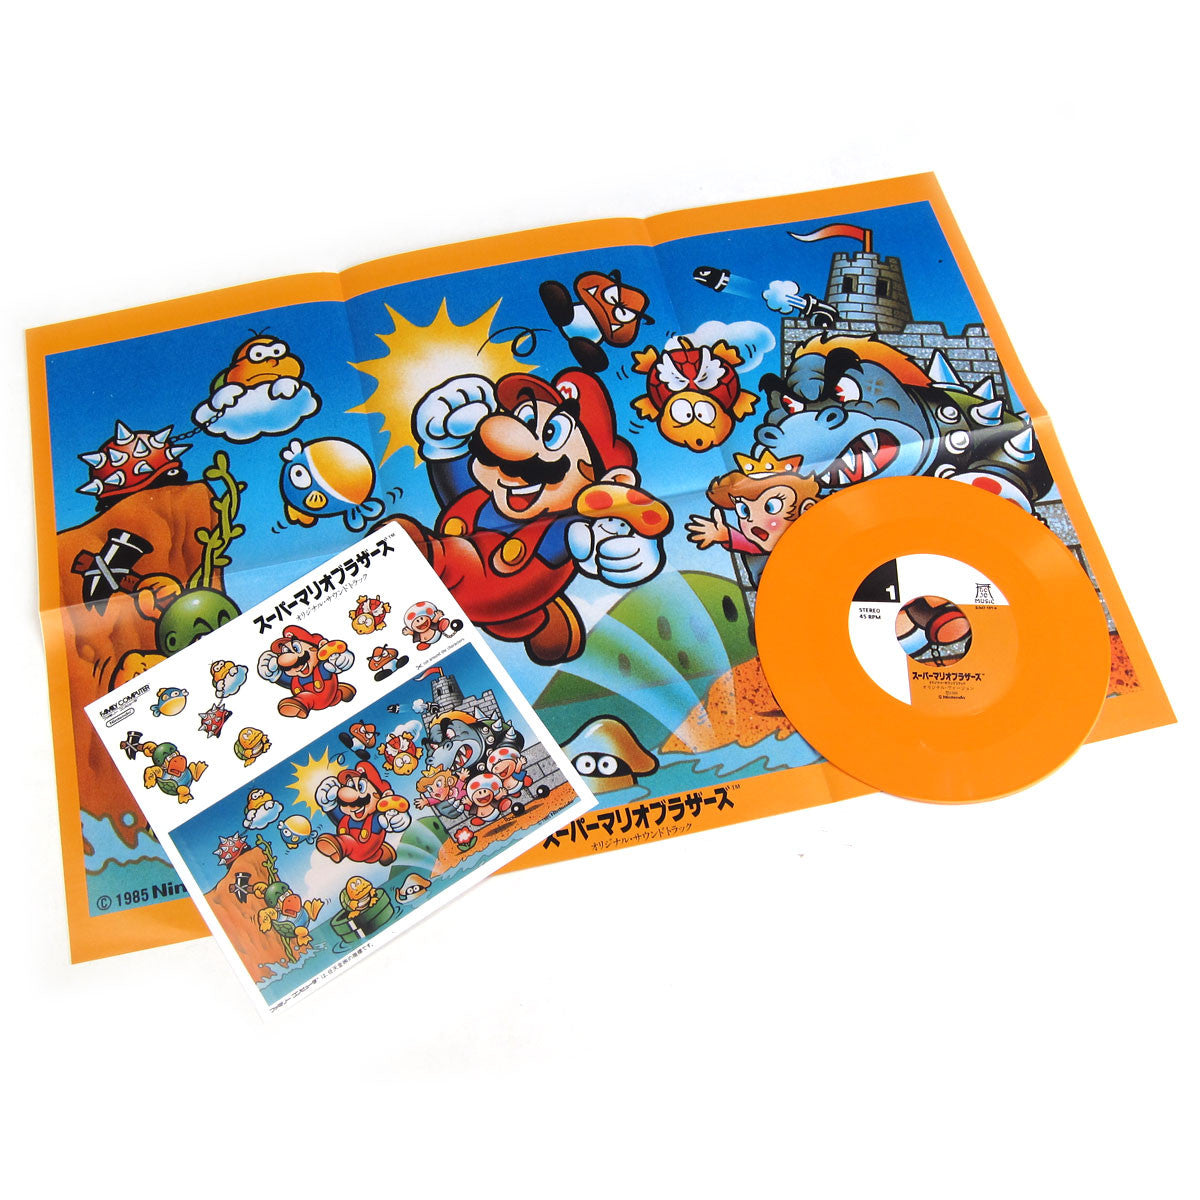 "Koji Kondo: Super Mario Original Video Soundtrack (Colored Vinyl) Vinyl 7"" detail"